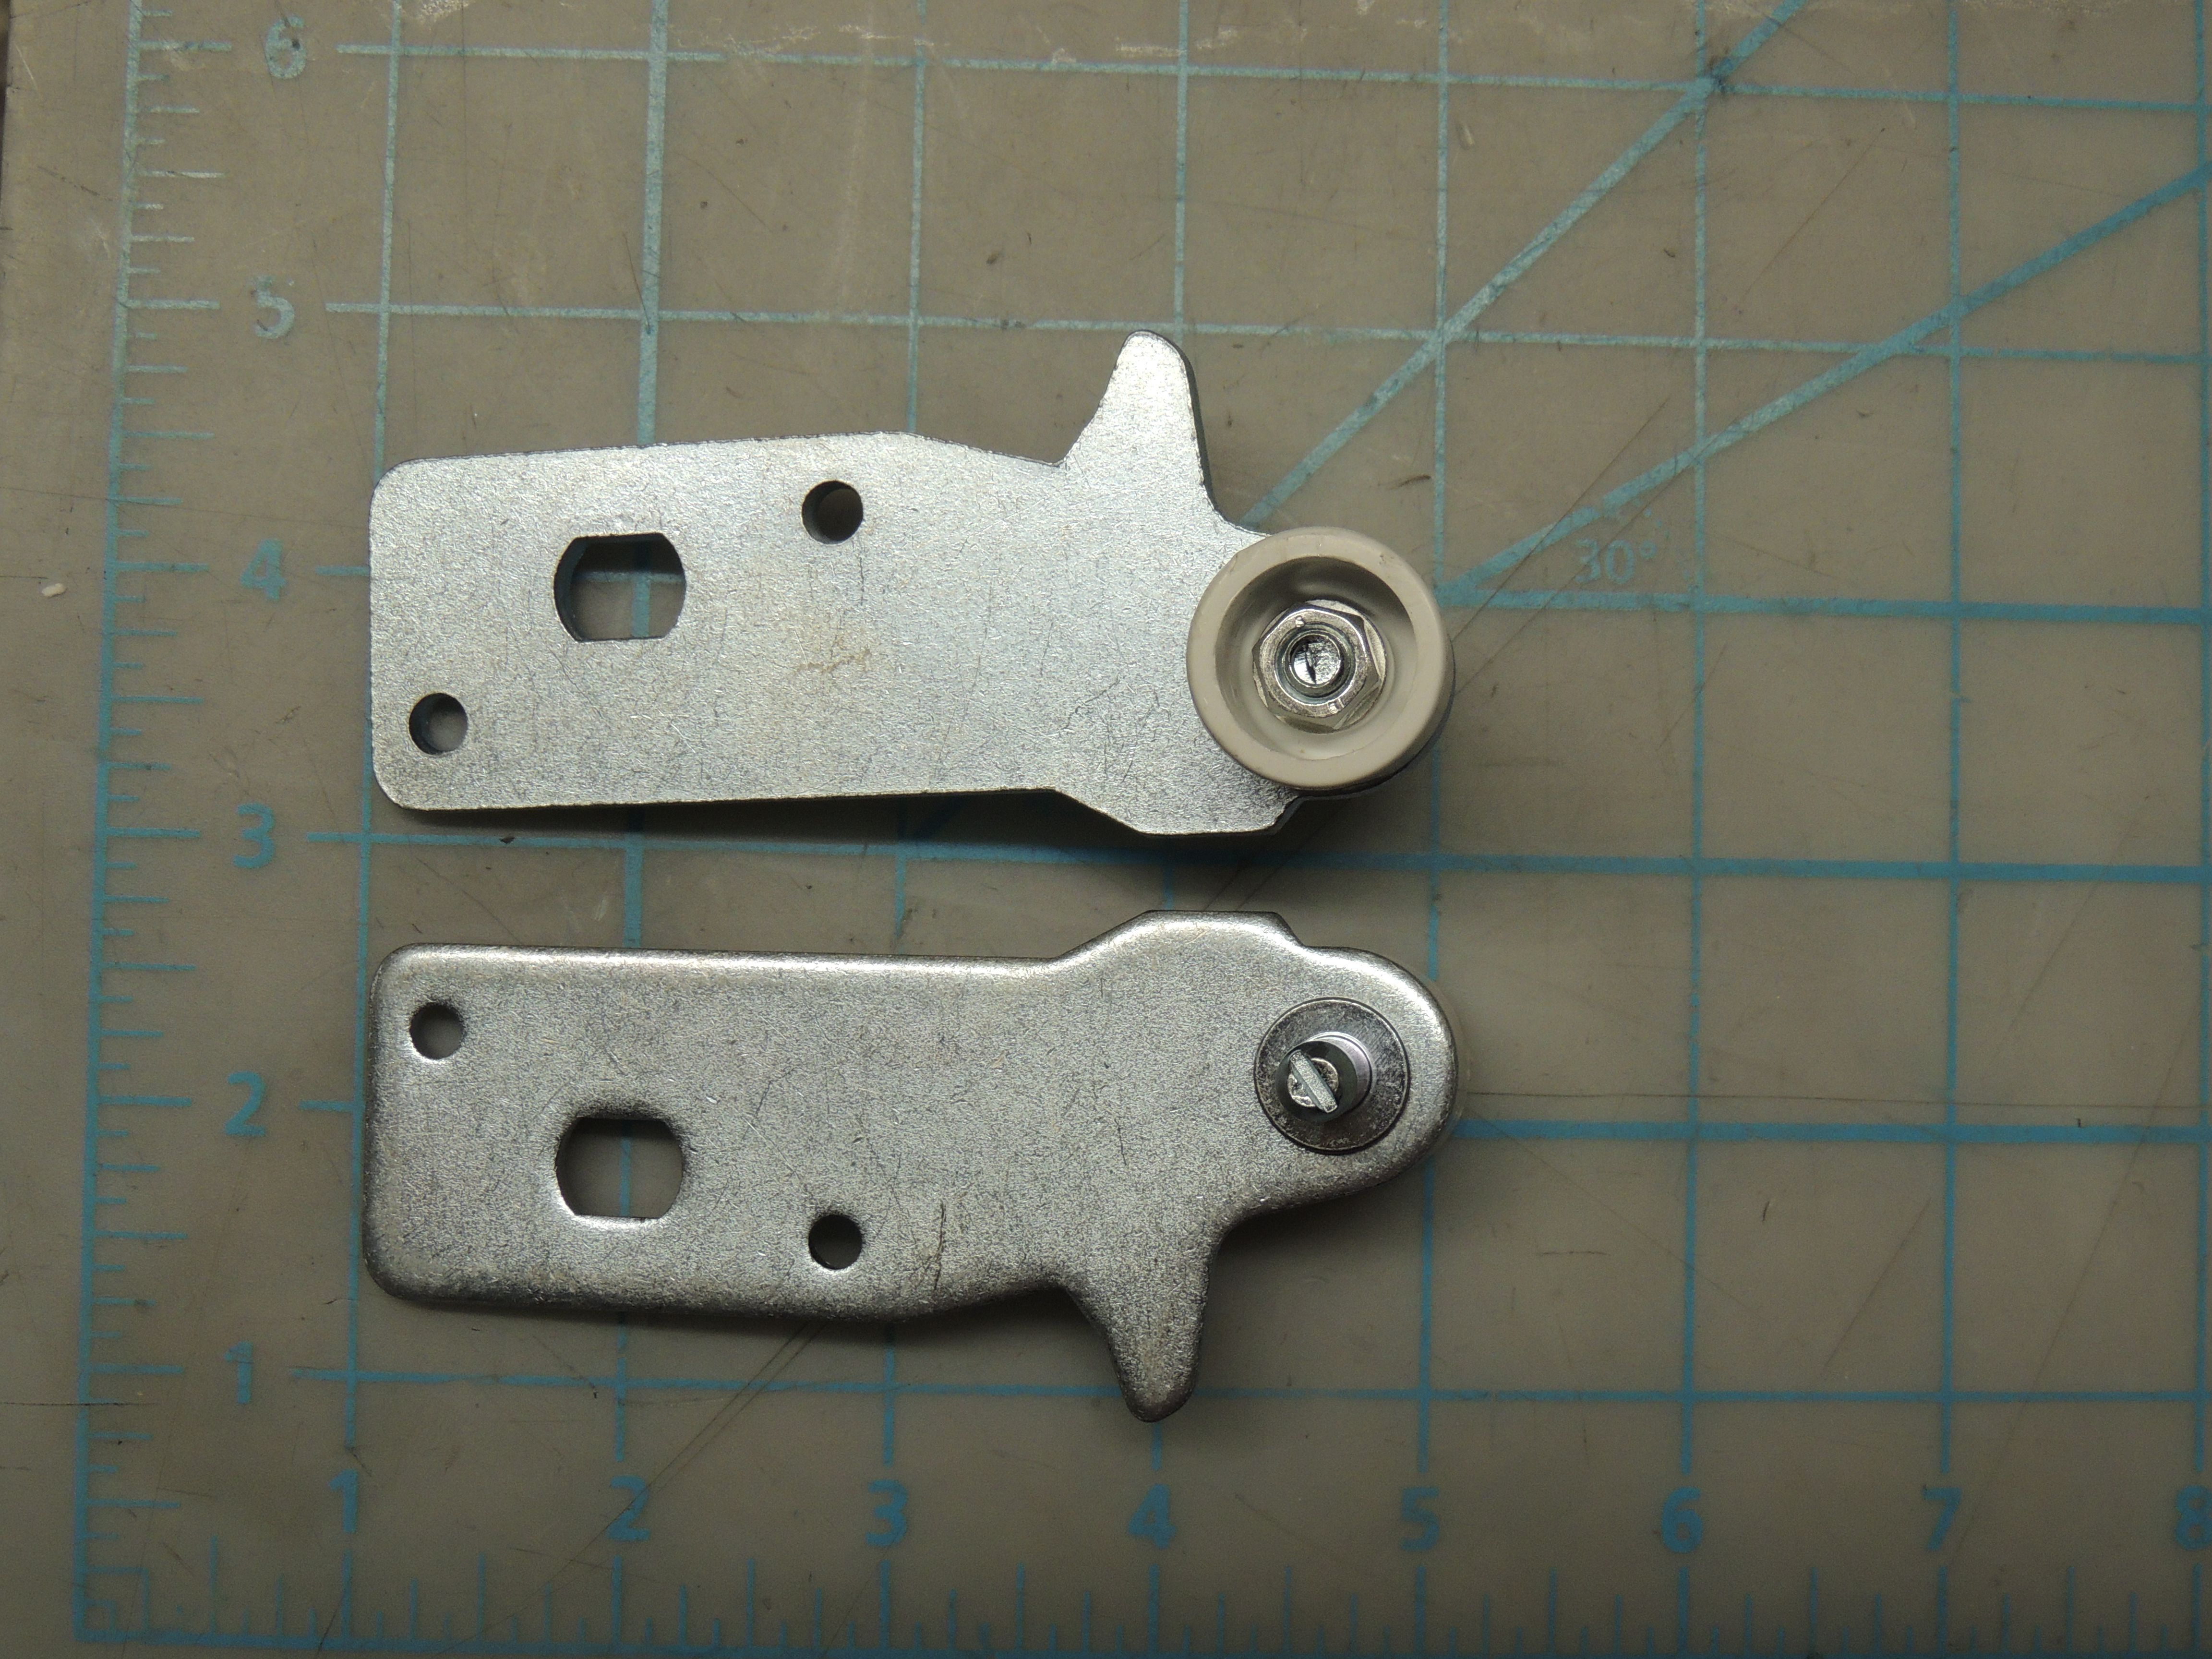 SBCR LOWER DOOR HINGE ASSEMBLY